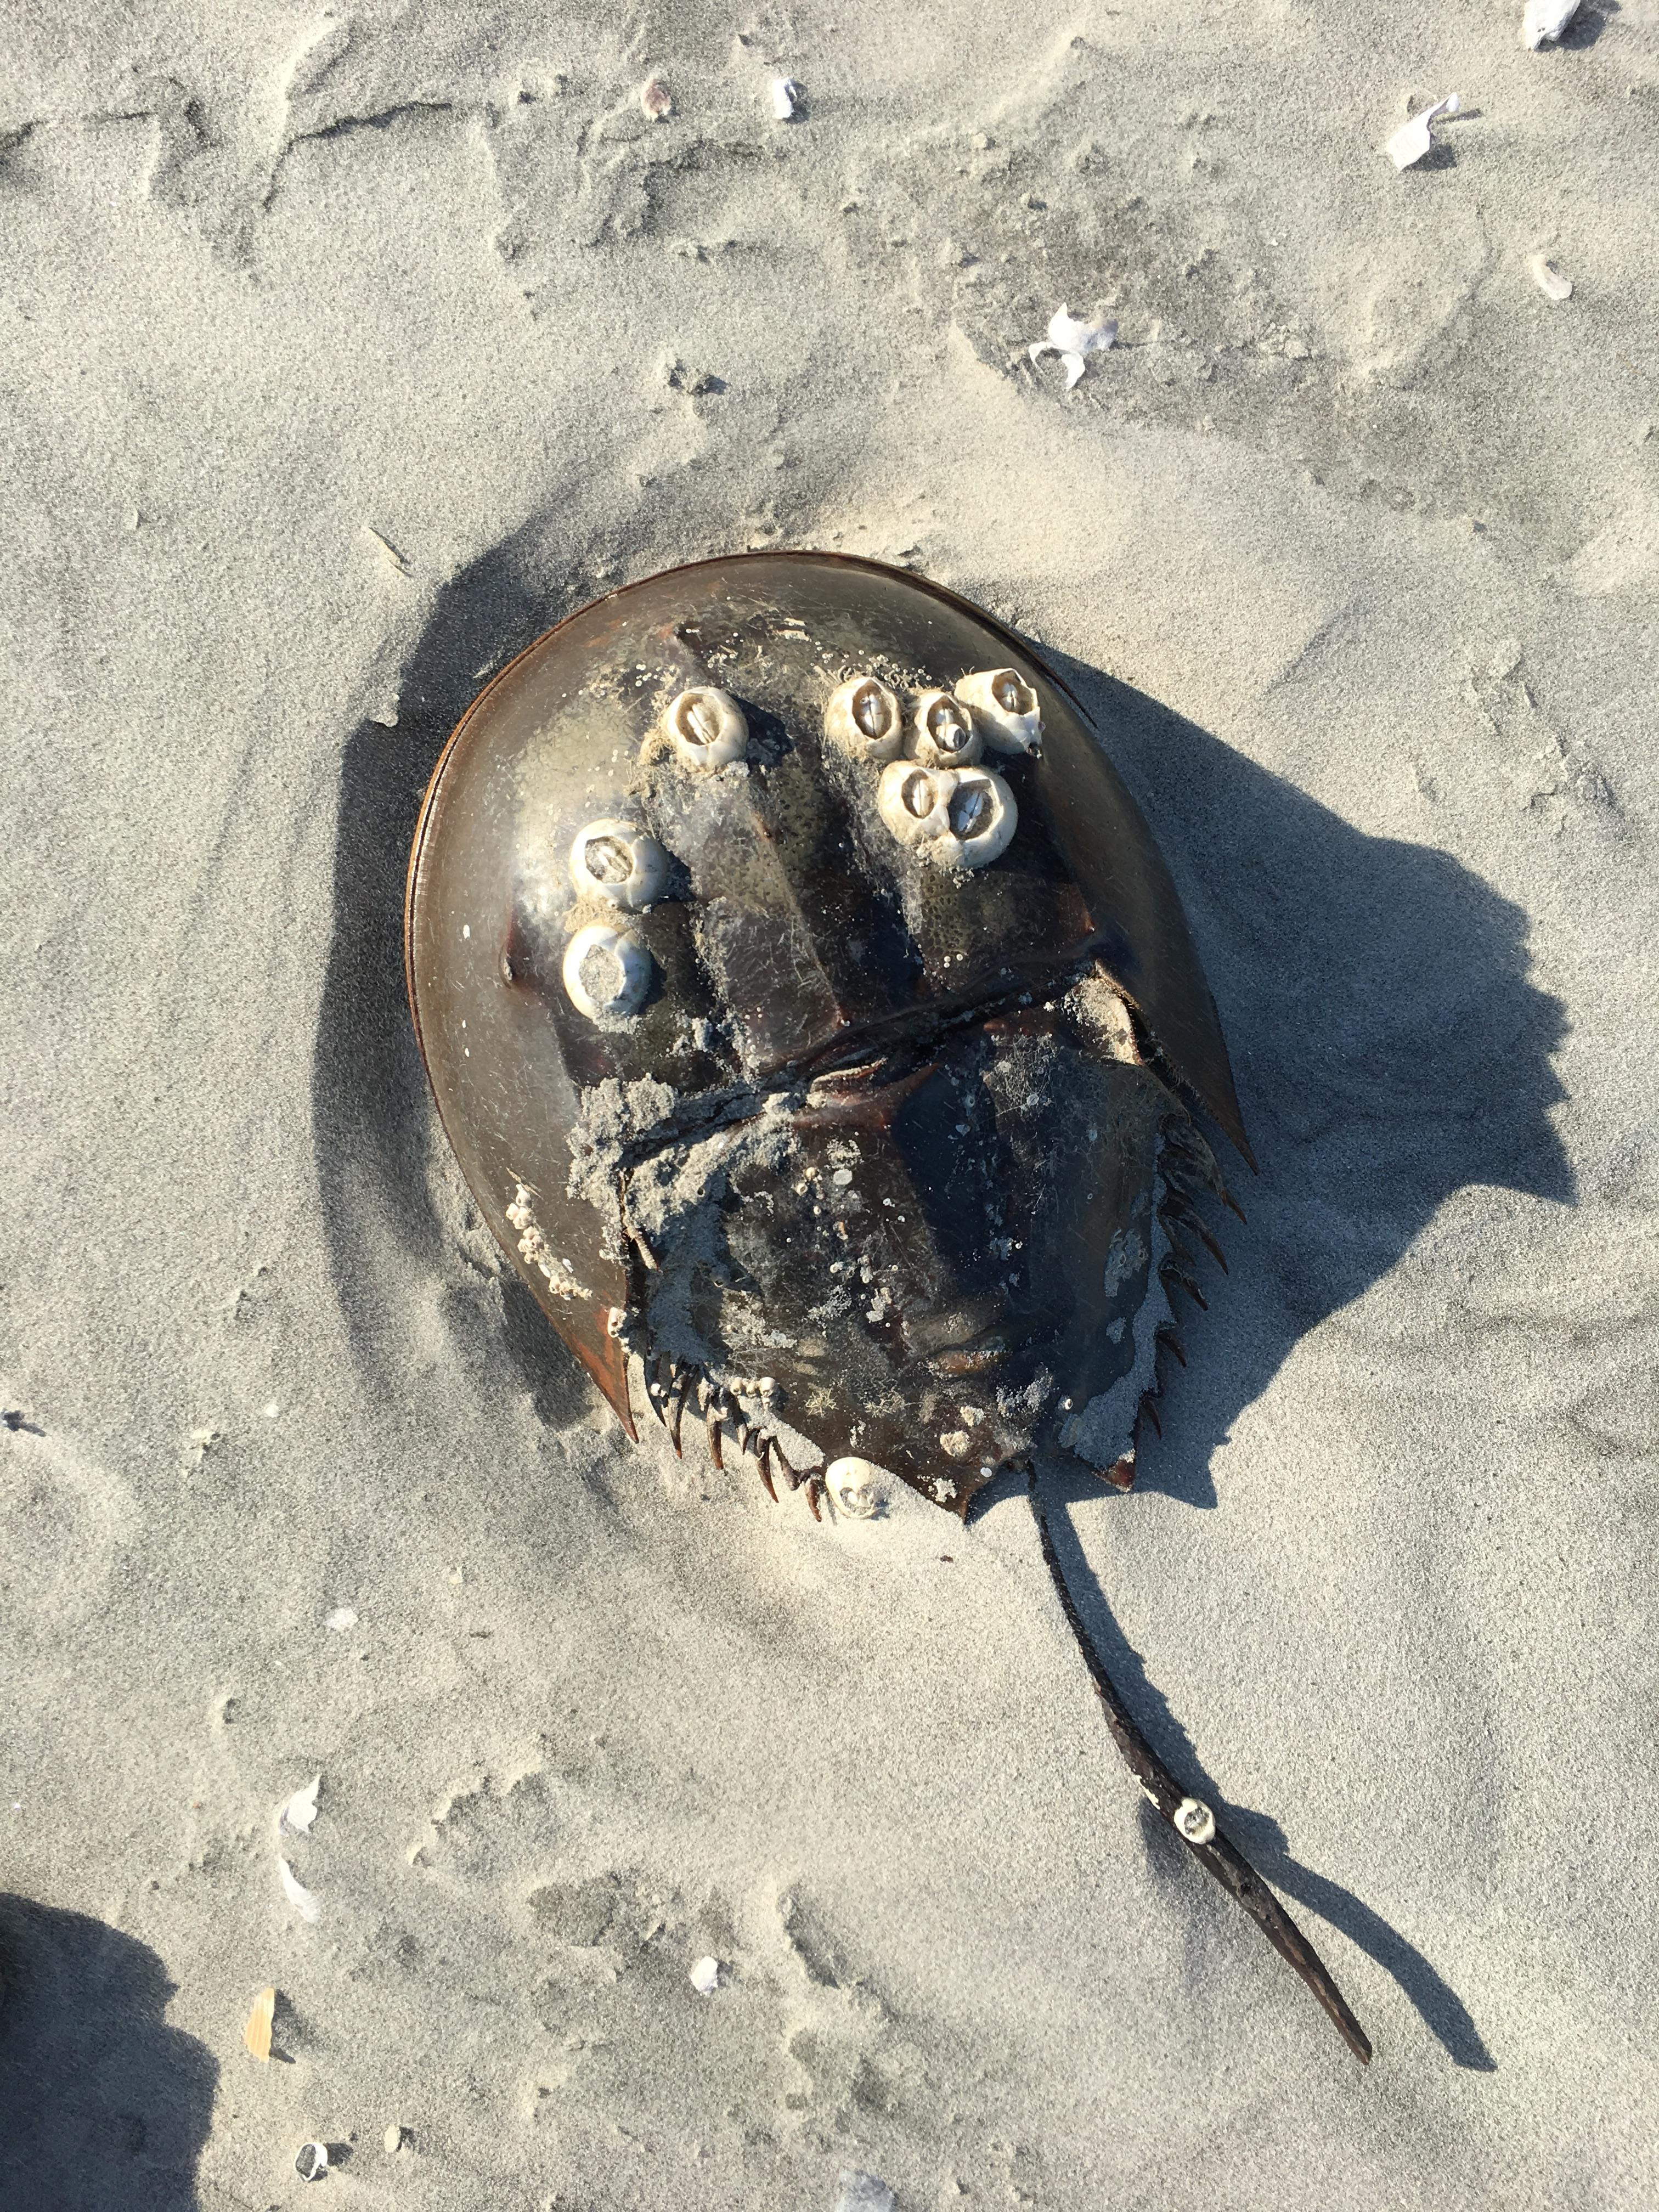 Horseshoe crab on Capers Island (Photo by Lani Furbank)